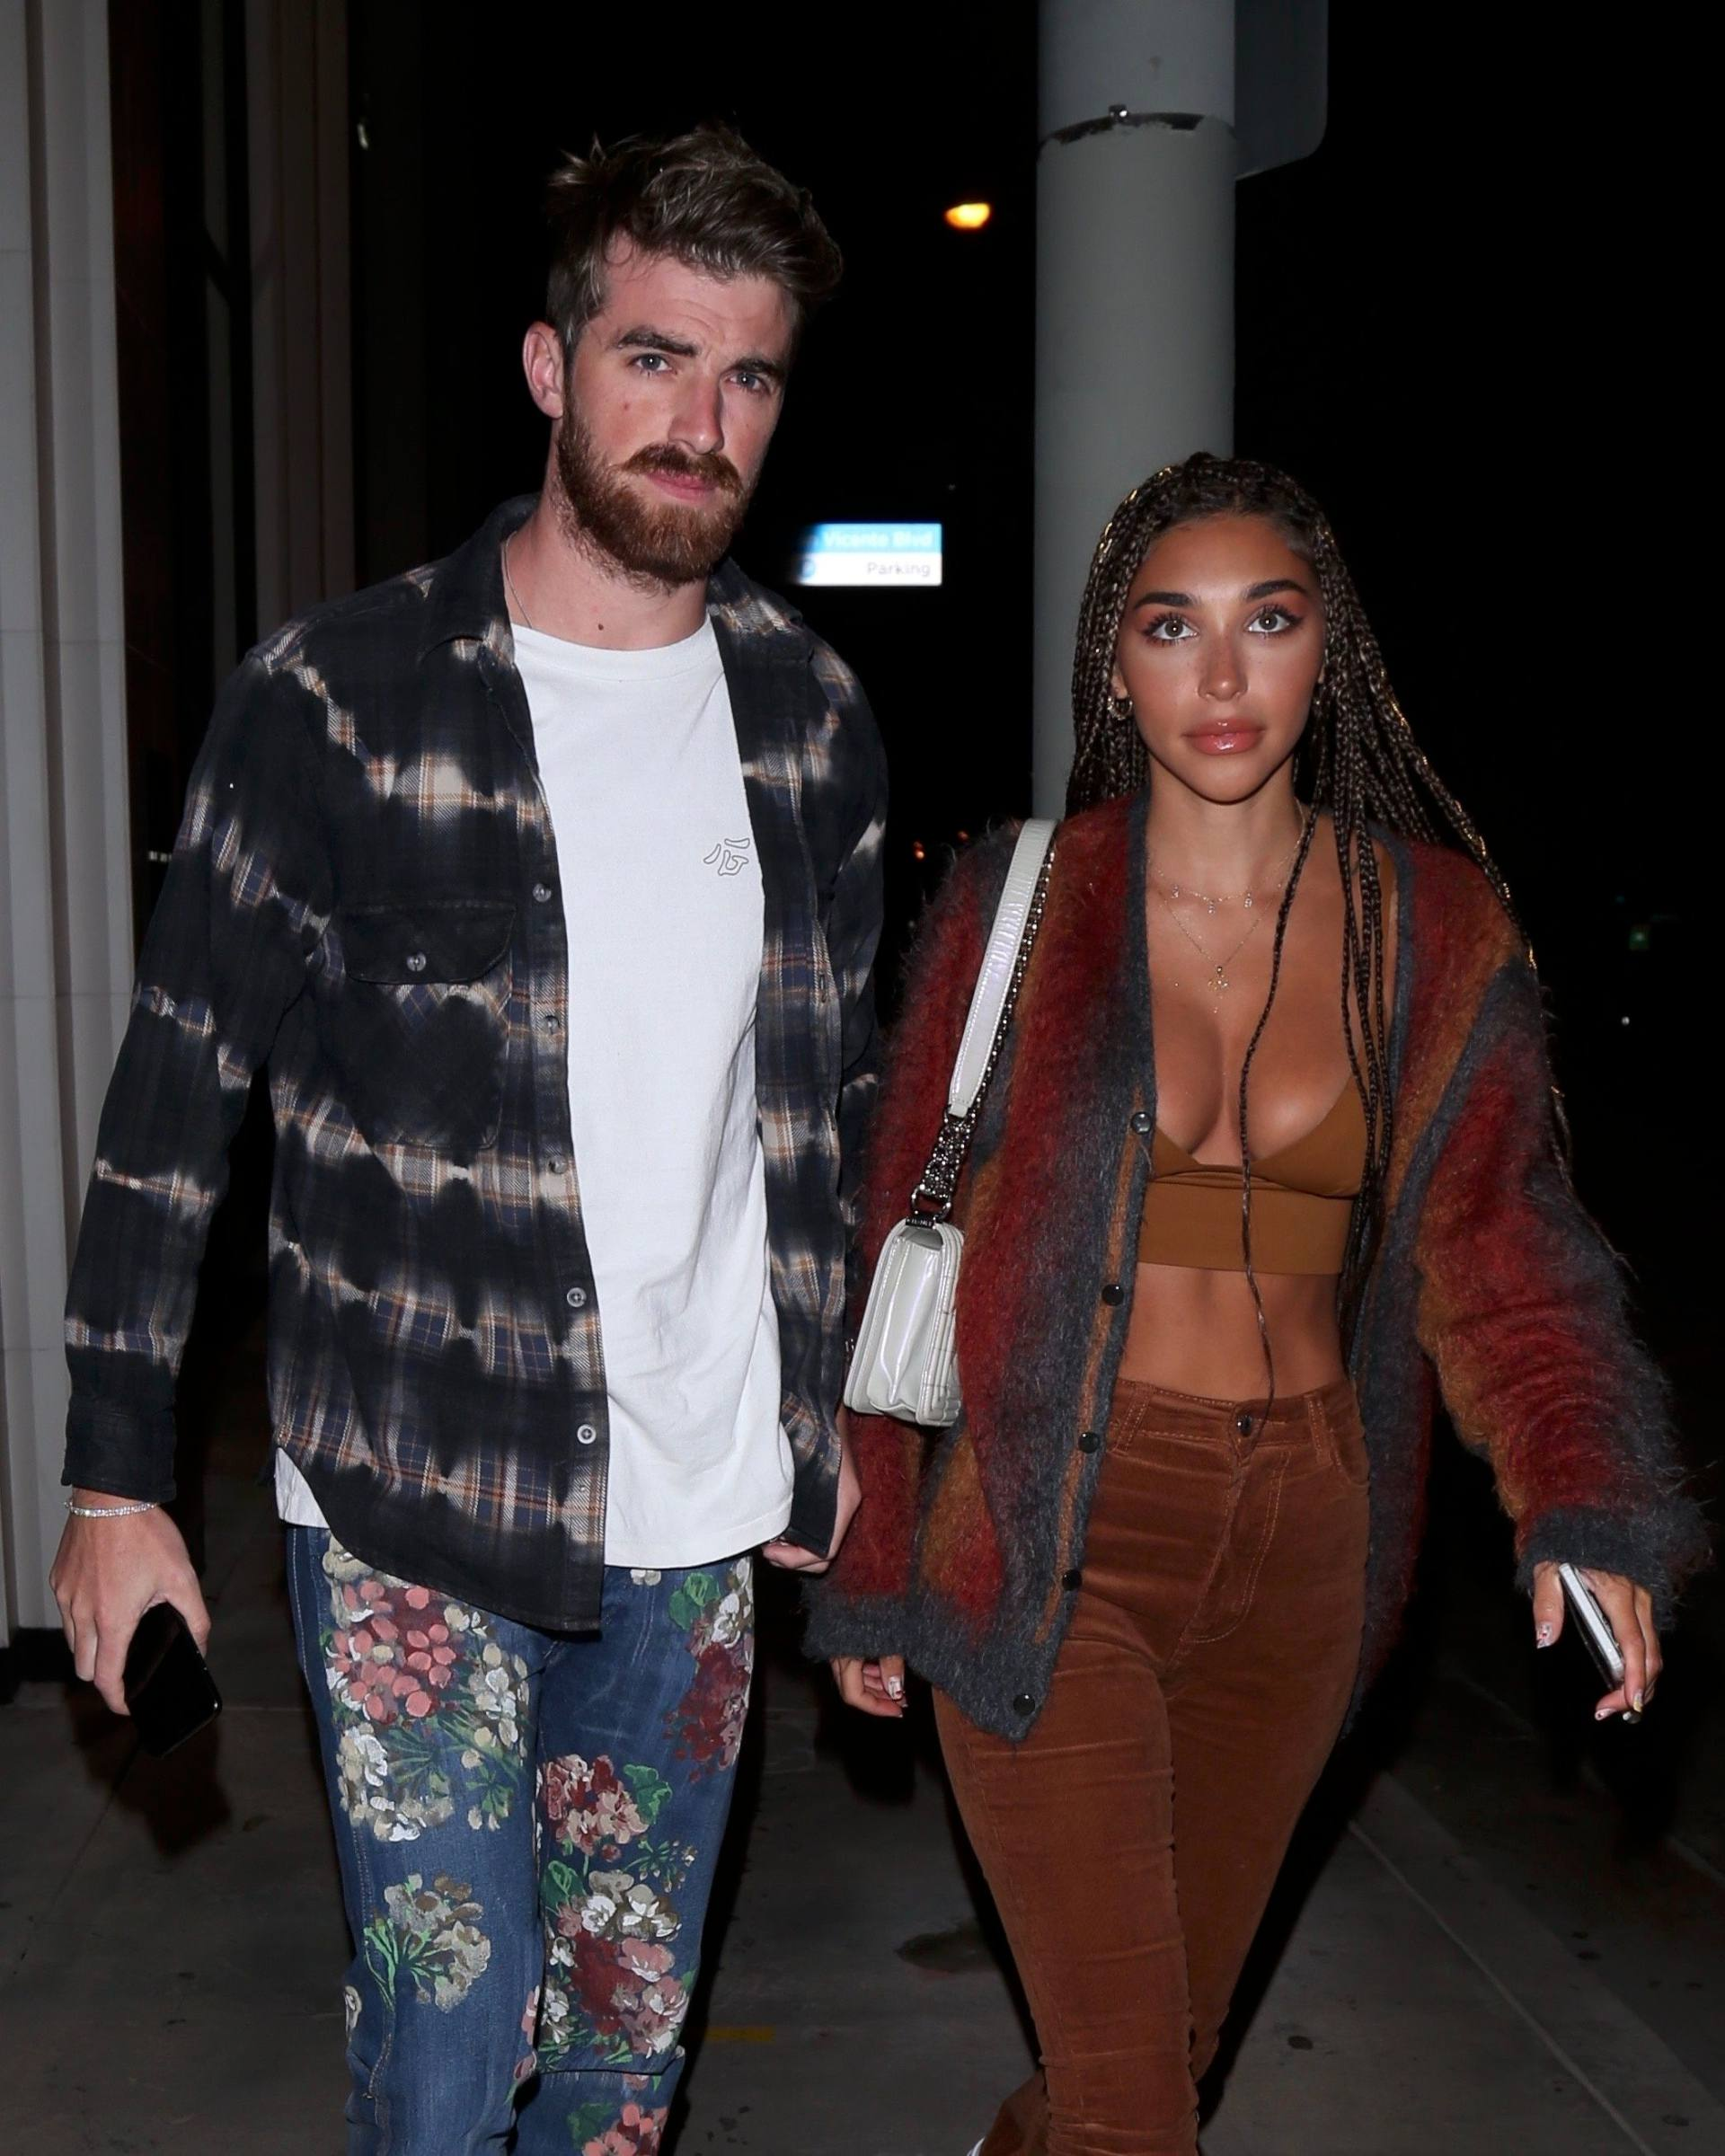 Chantel Jeffries – Sexy Boobs In Big Cleavage At Catch Restaurant In West Hollywood 0009